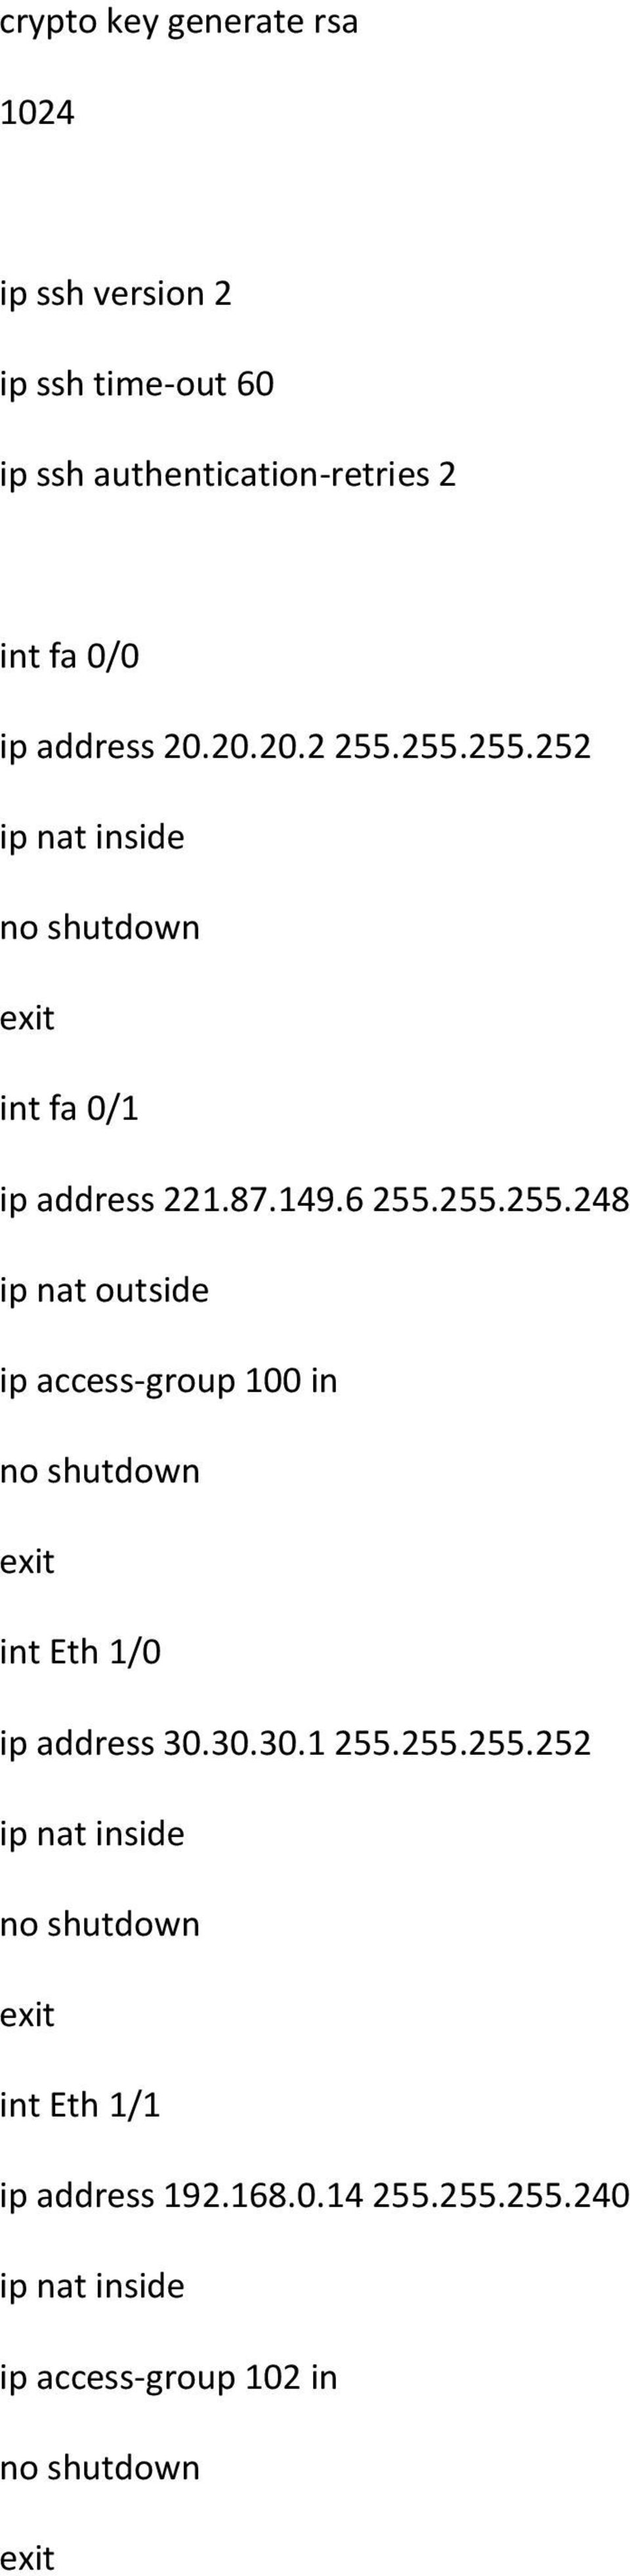 30.30.1 255.255.255.252 ip nat inside no shutdown int Eth 1/1 ip address 192.168.0.14 255.255.255.240 ip nat inside ip access-group 102 in no shutdown